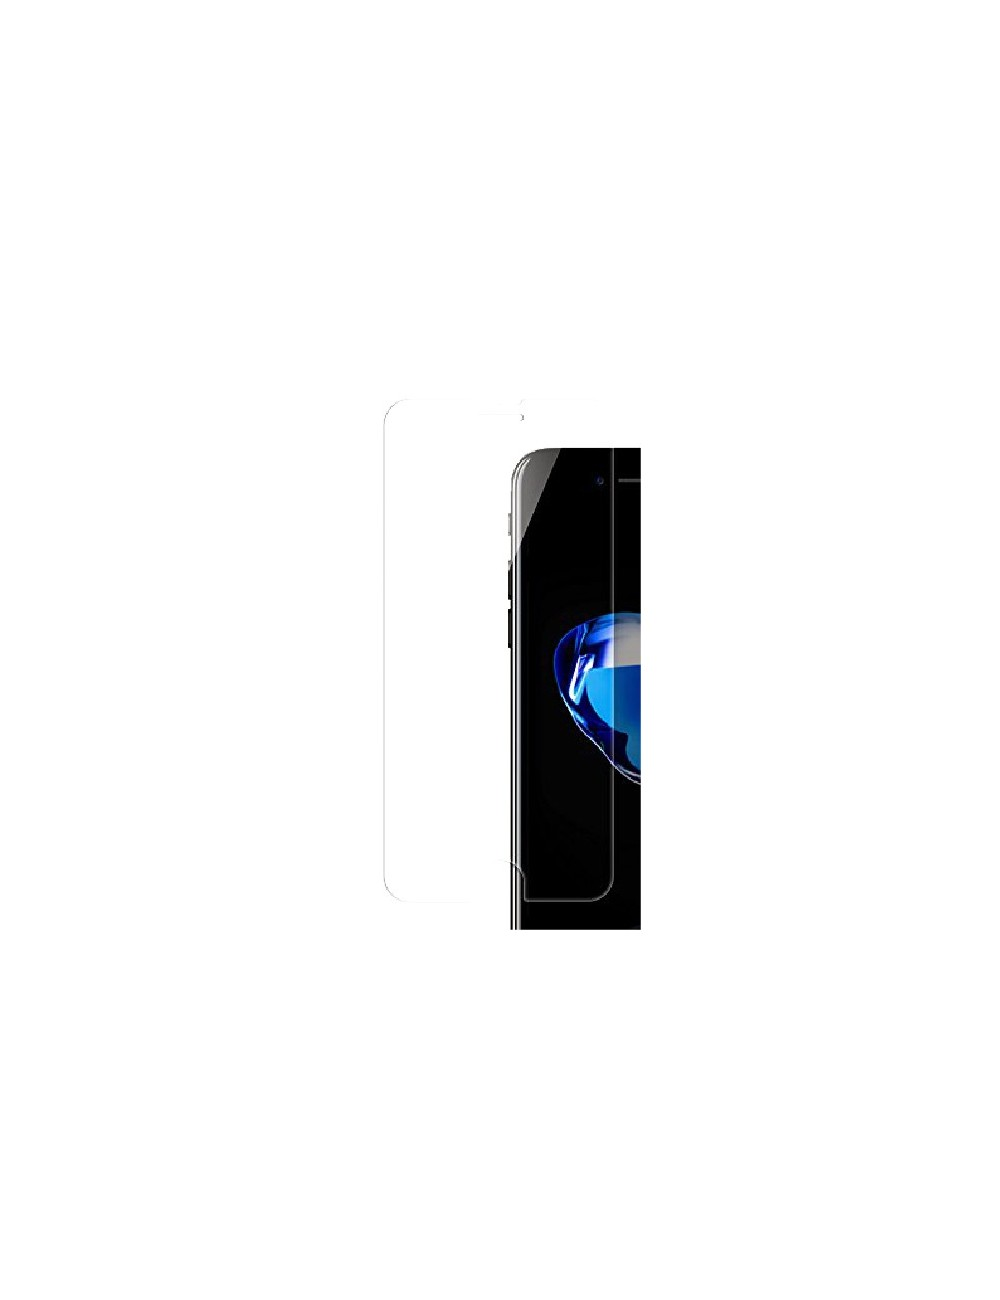 Screen glass protector